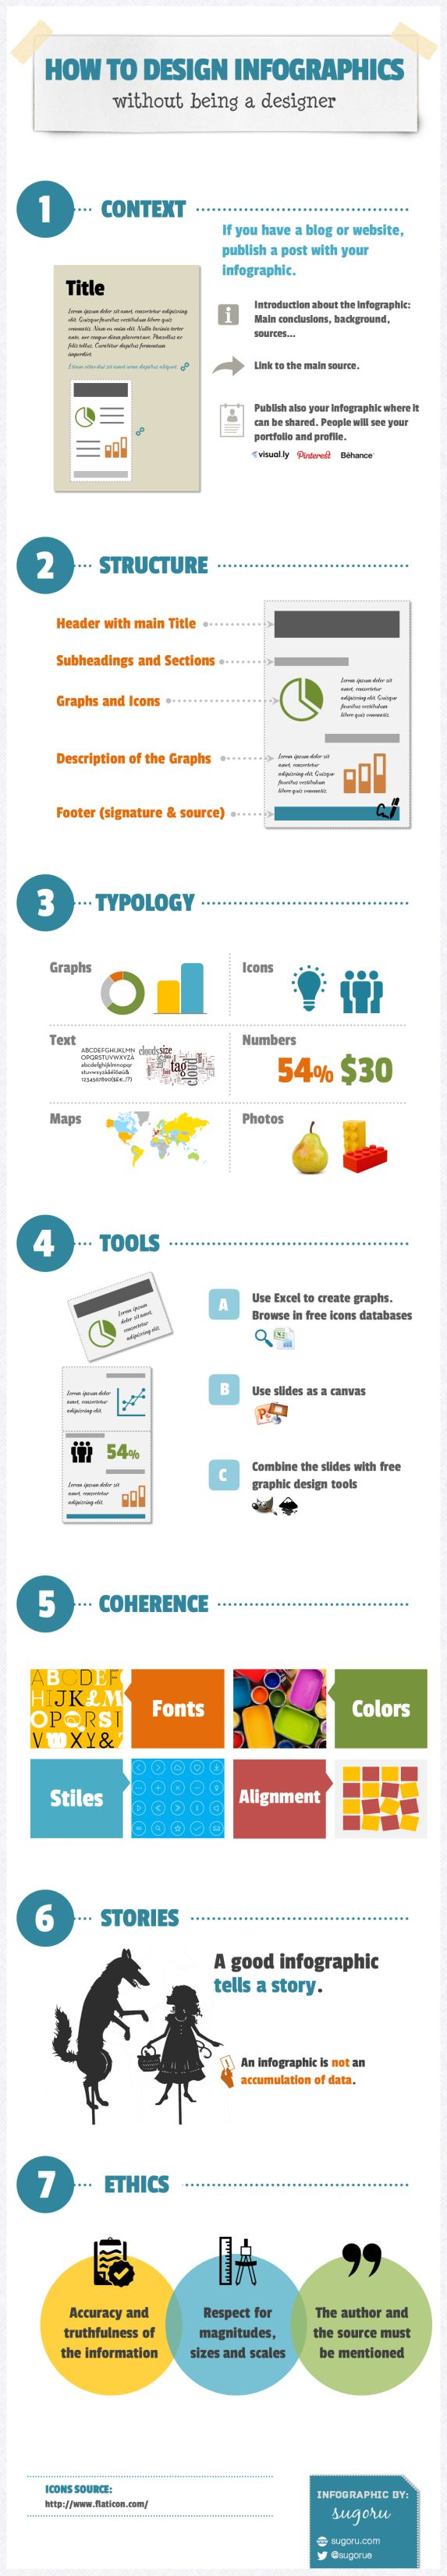 [Infographic] How to Design Infographic Without being a Designer